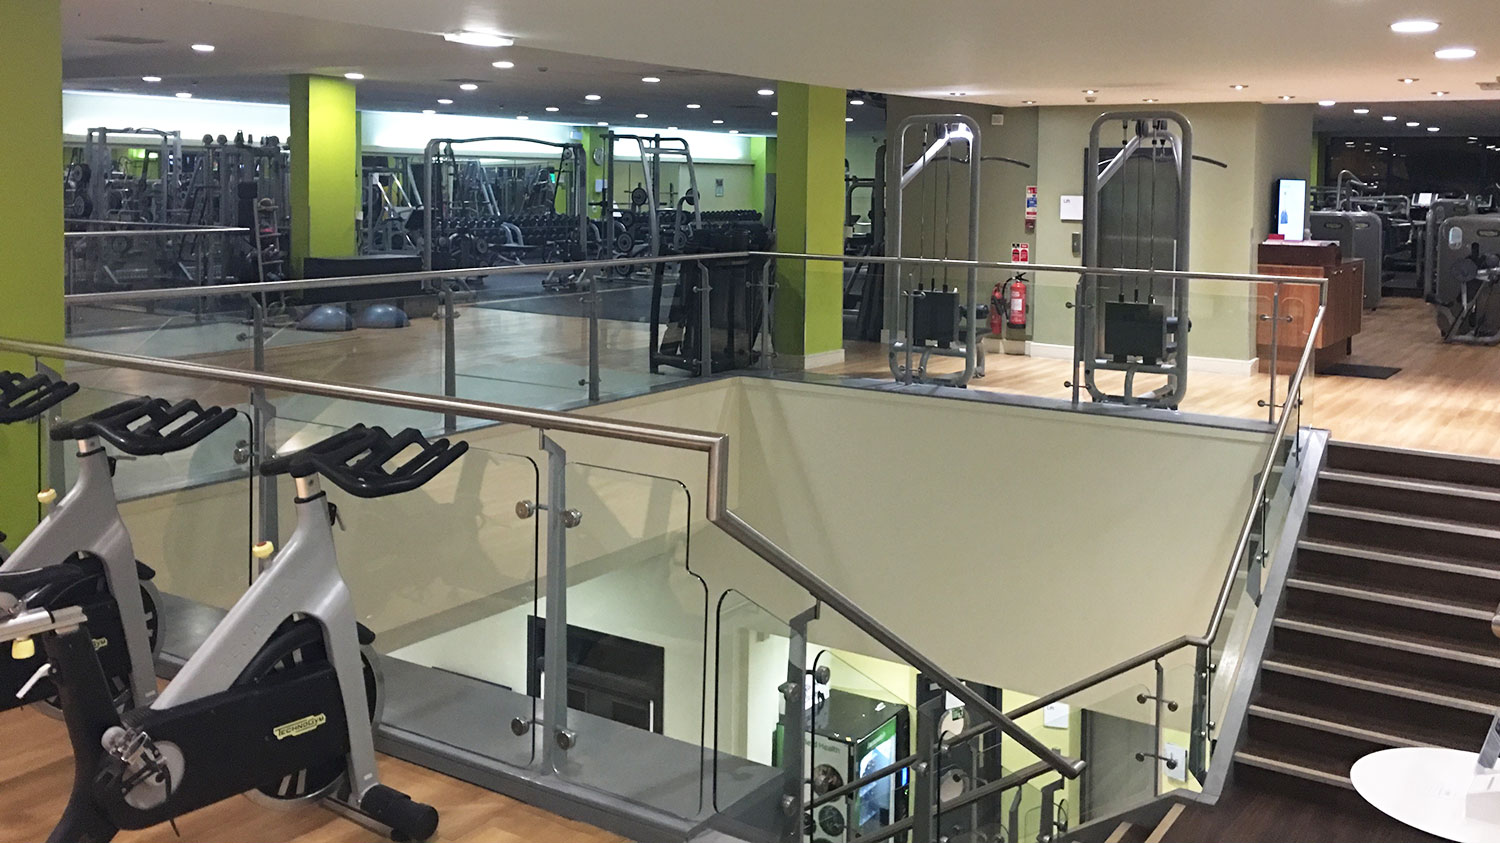 Crawley Central Fitness & Wellbeing Gym, West Green